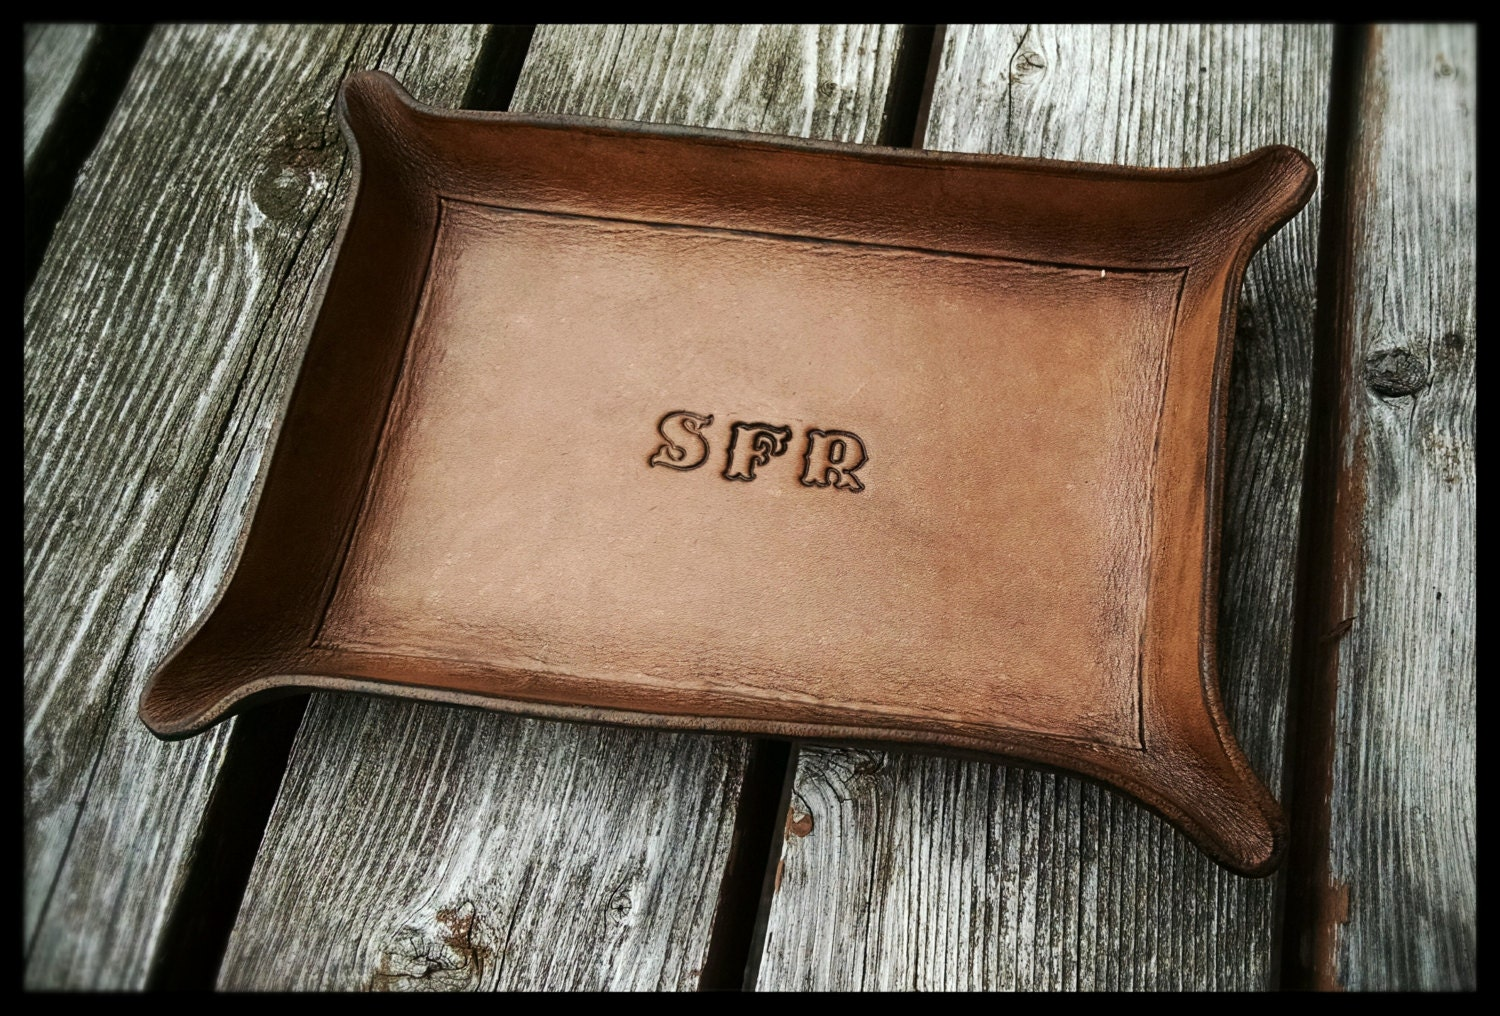 Personalized Leather Valet Tray For Dresser Or Desk